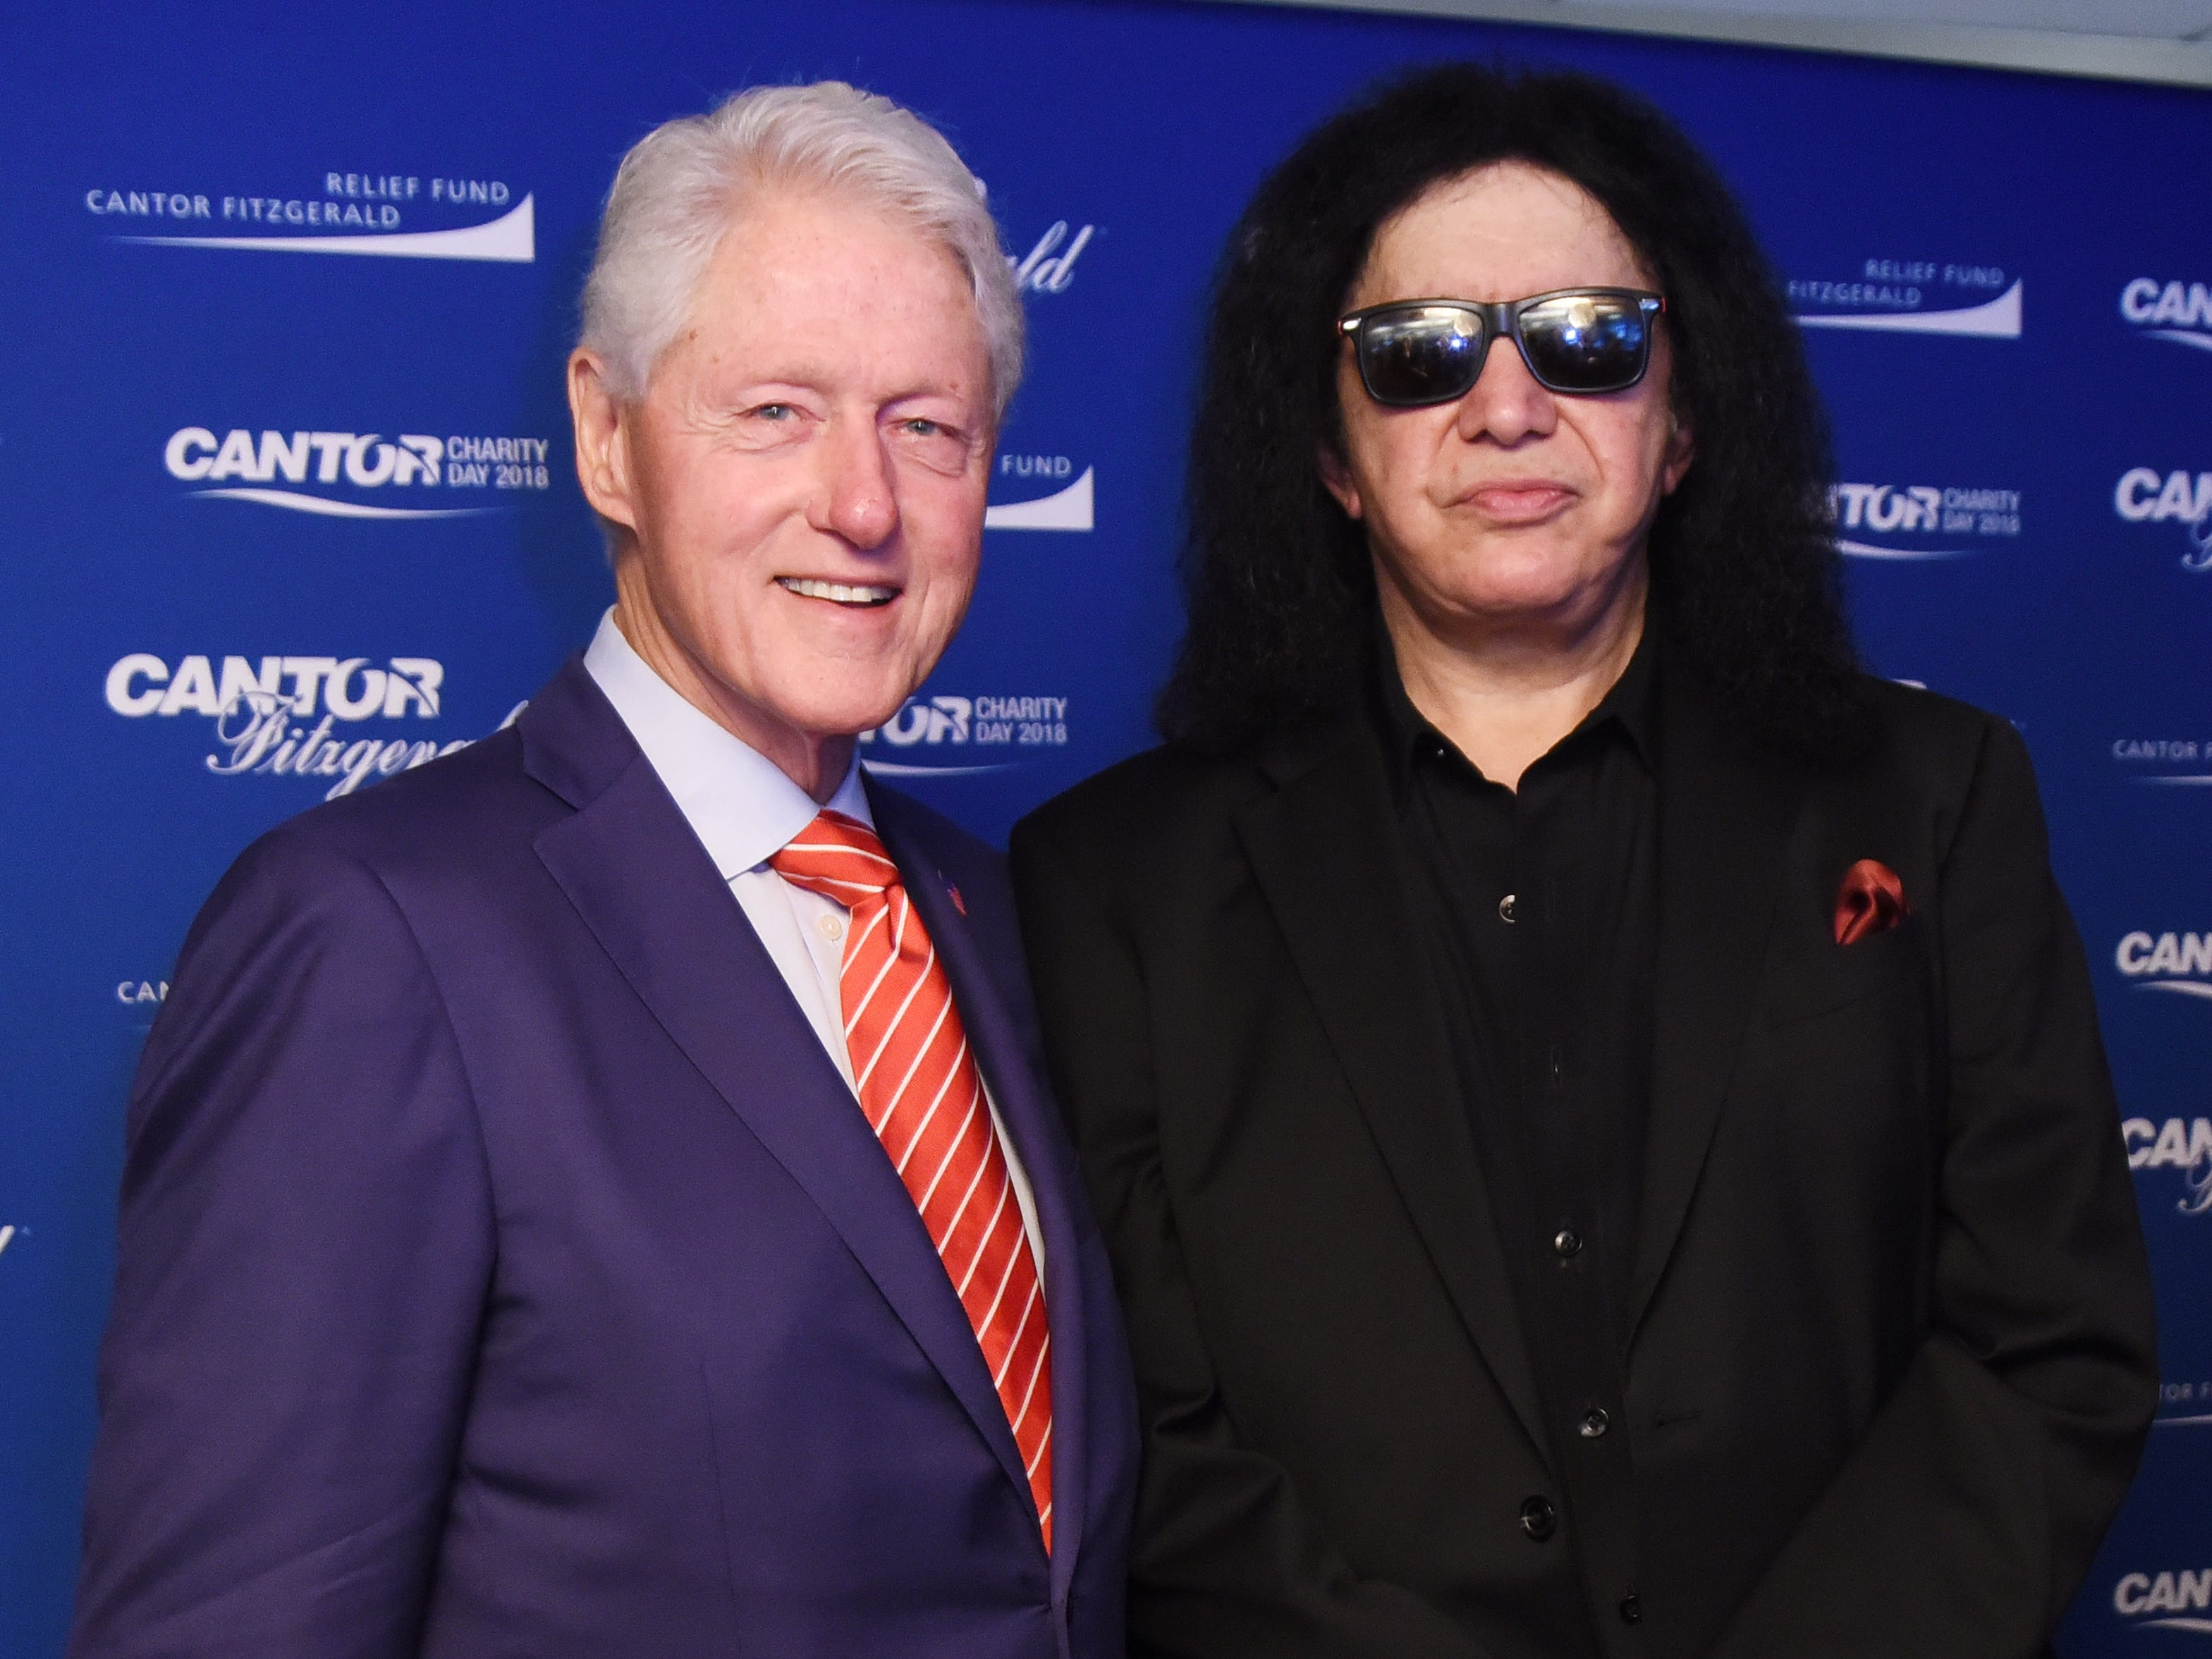 NEW YORK, NY - SEPTEMBER 11: Bill Clinton and Gene Simmons attend the Annual Charity Day hosted by Cantor Fitzgerald, BGC and GFI at Cantor Fitzgerald on September 11, 2018 in New York City.